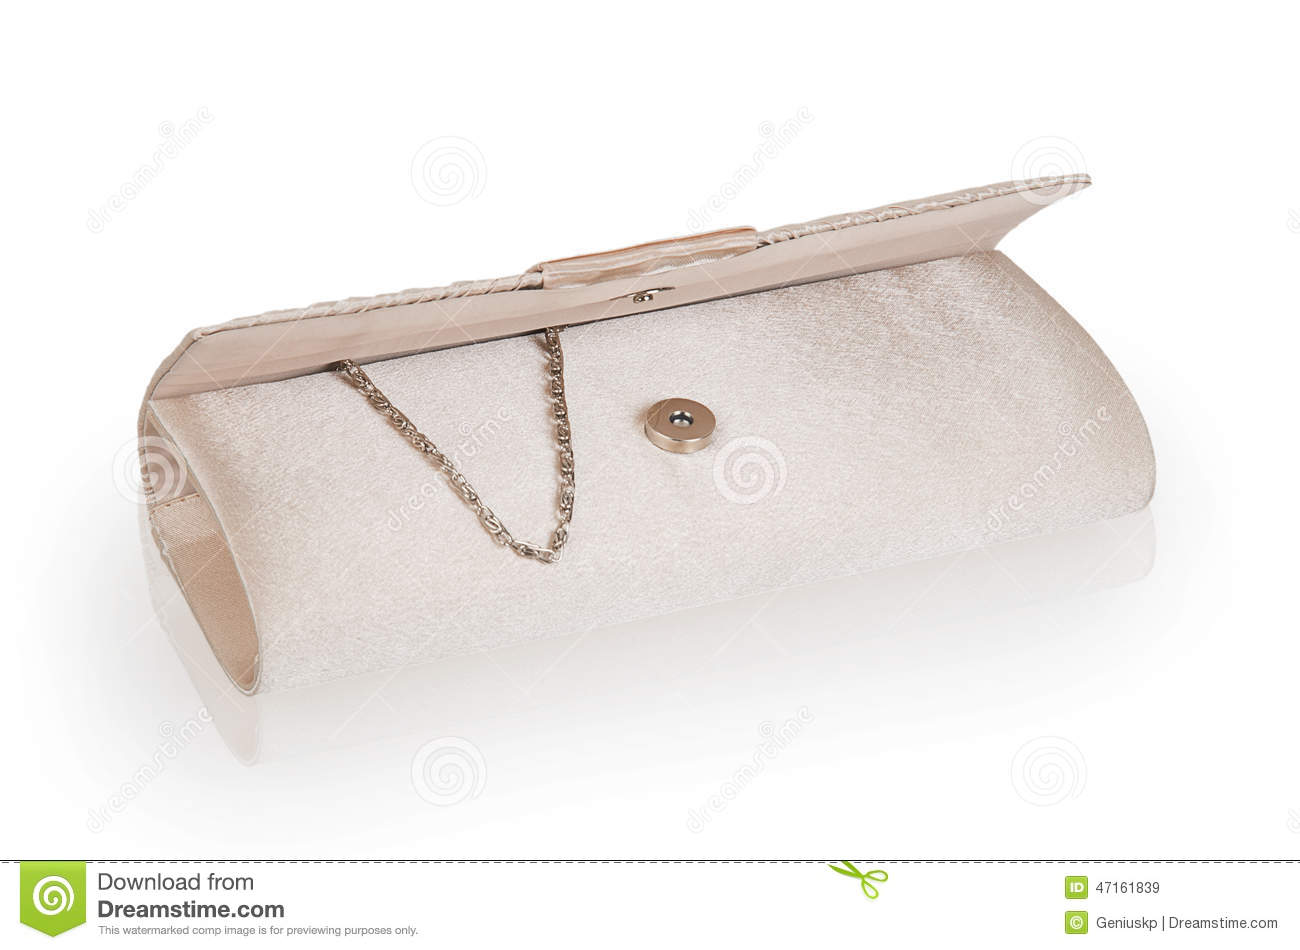 1c02b151 Open women clutch bag isolated on white background. More similar stock  images